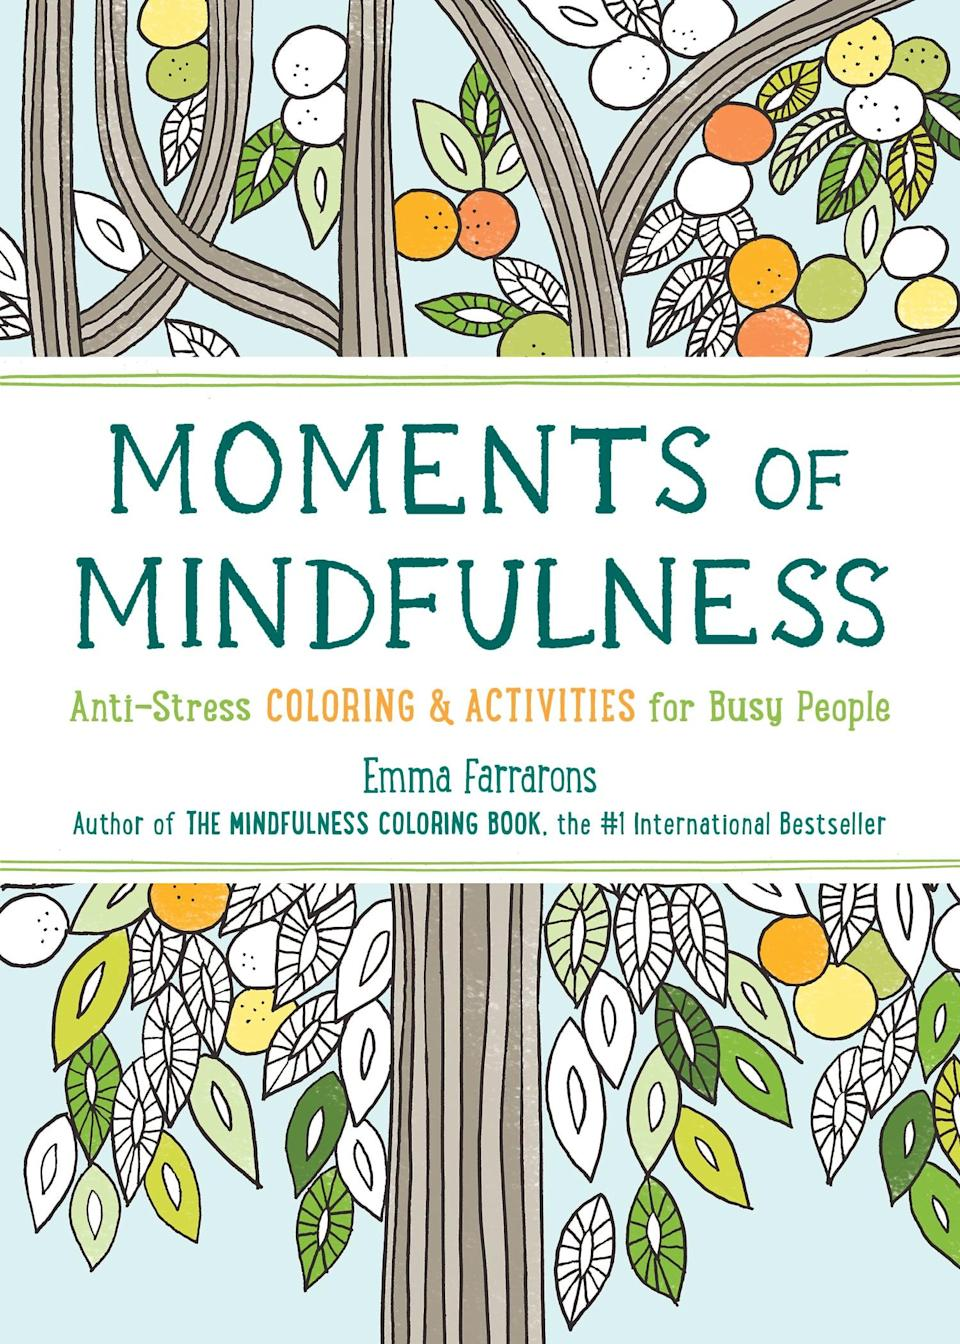 <p><span>Moments of Mindfulness: Anti-Stress Coloring & Activities for Busy People</span> ($9) is an anti-stress coloring book designed with busy people in mind to help relieve the burdens of everyday life.</p>